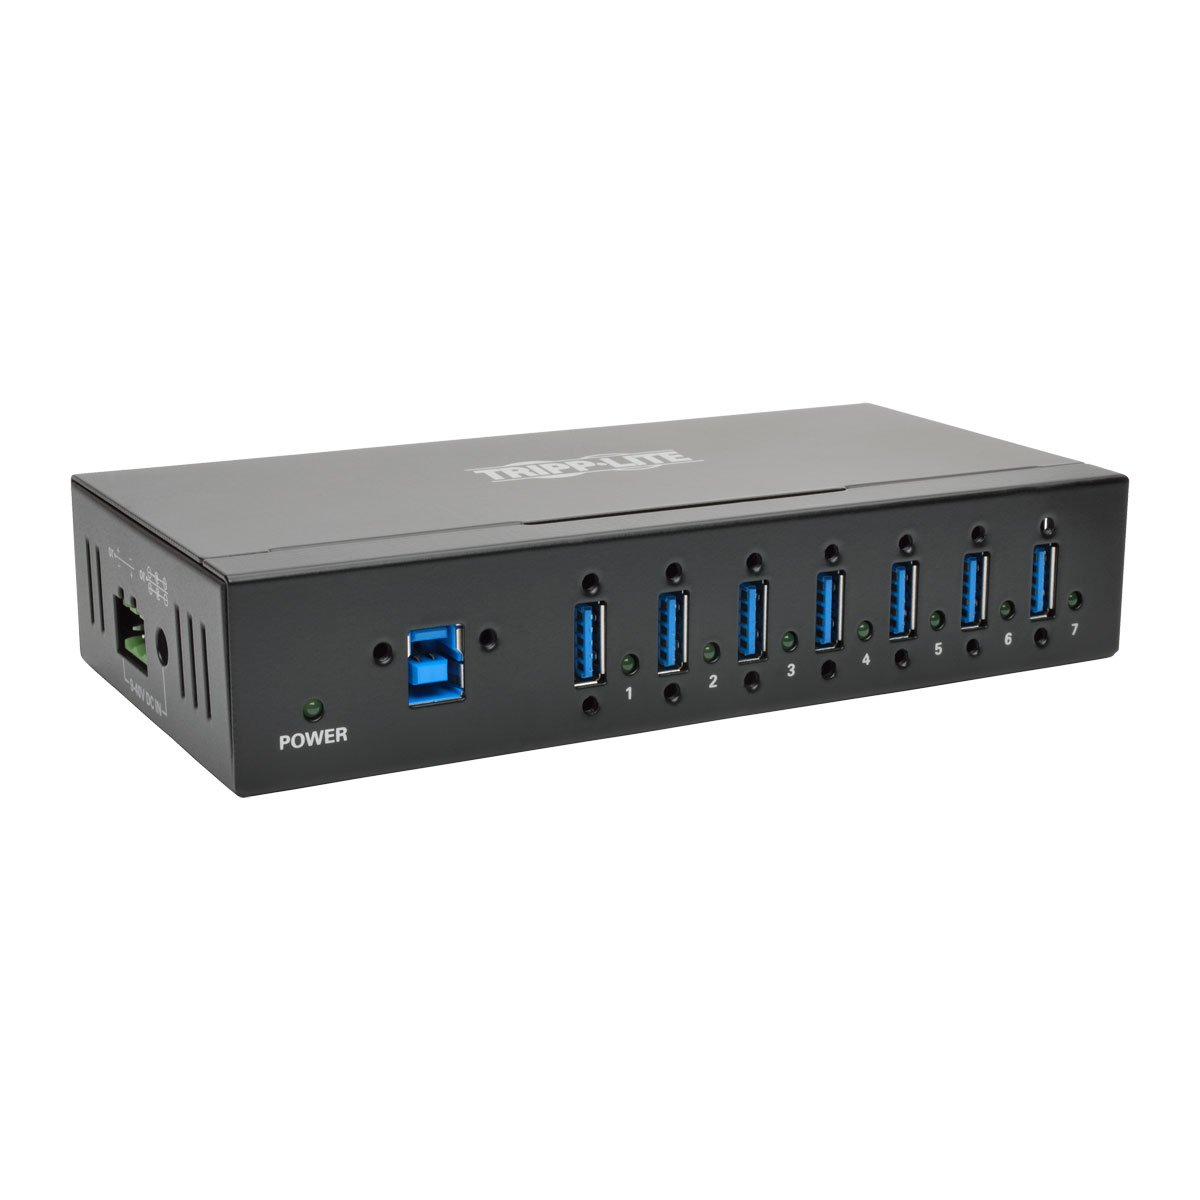 Tripp Lite 7-Port Industrial USB-A 3.0 SuperSpeed Hub with 15KV ESD Immunity, Metal Case, Mountable, USB Type-A (U360-007-IND) by Tripp Lite